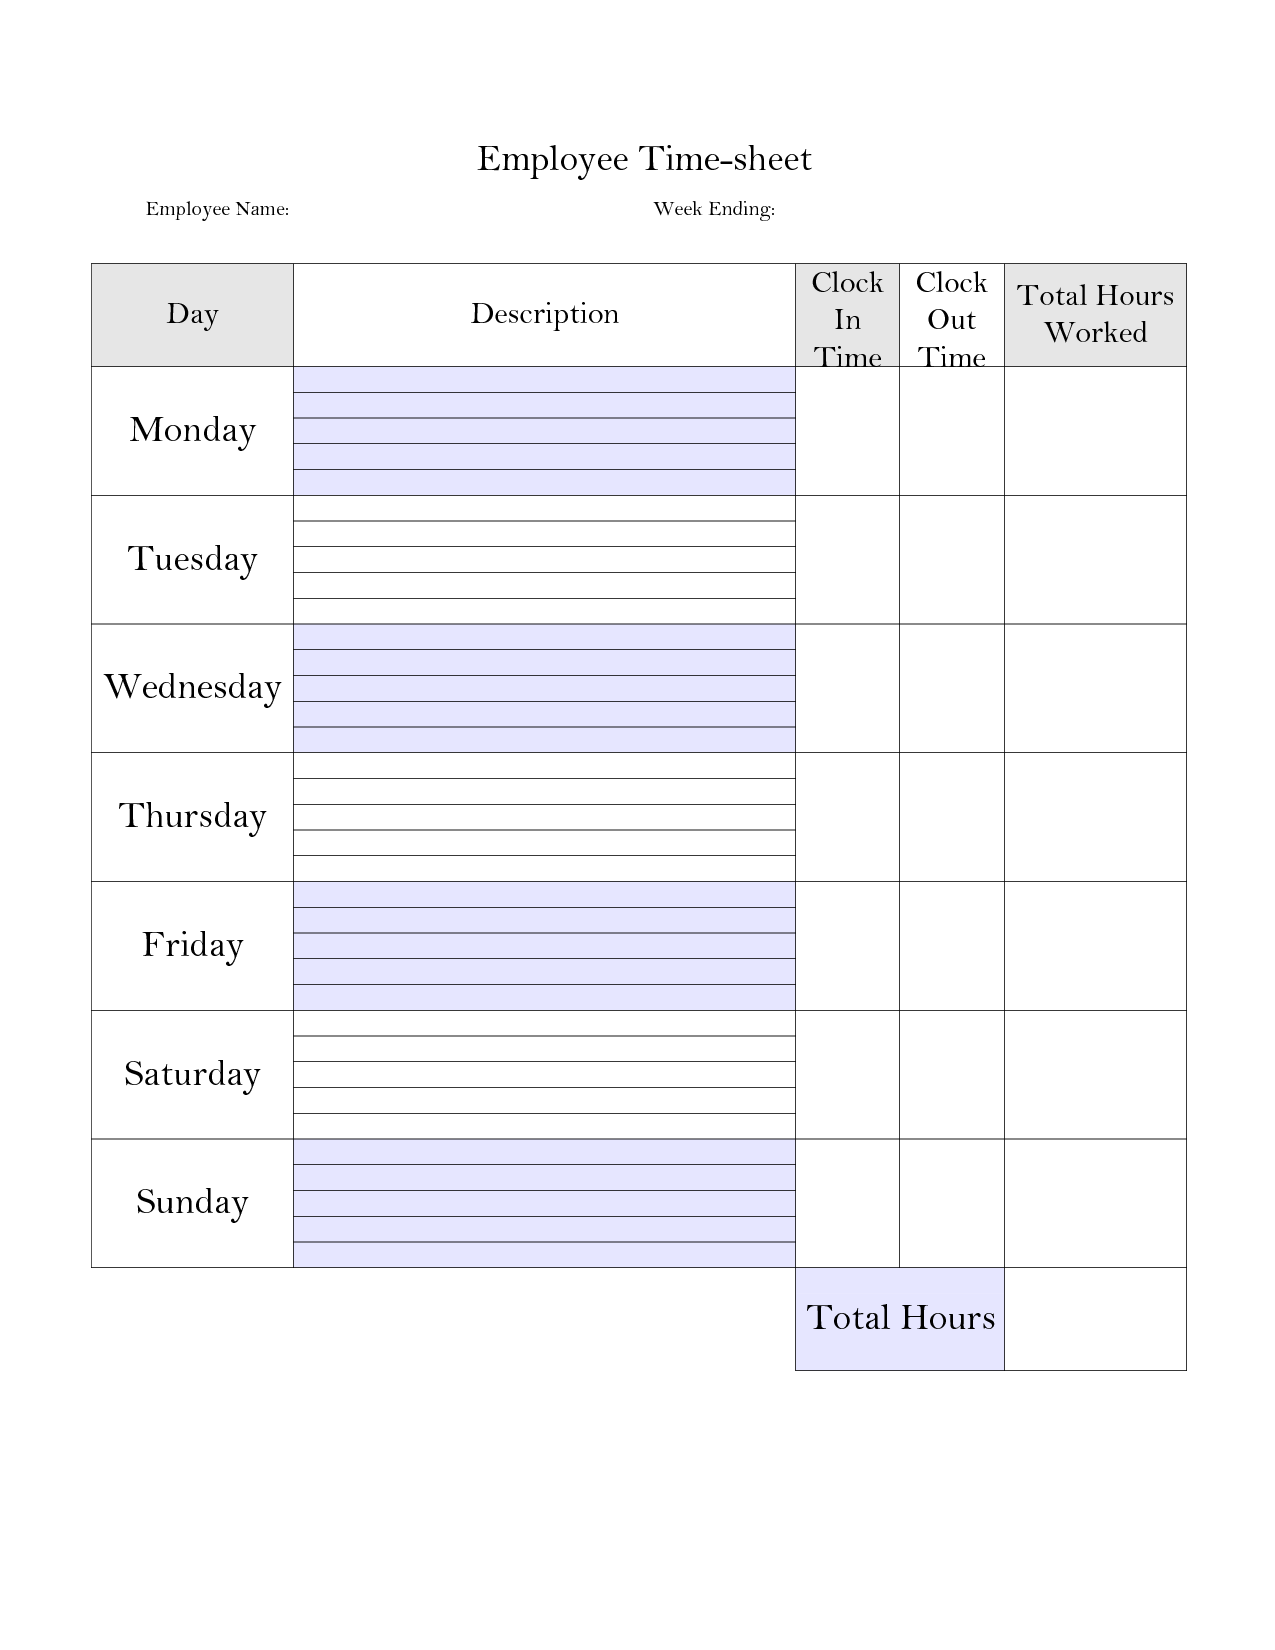 Printable Weekly Employee Time Card